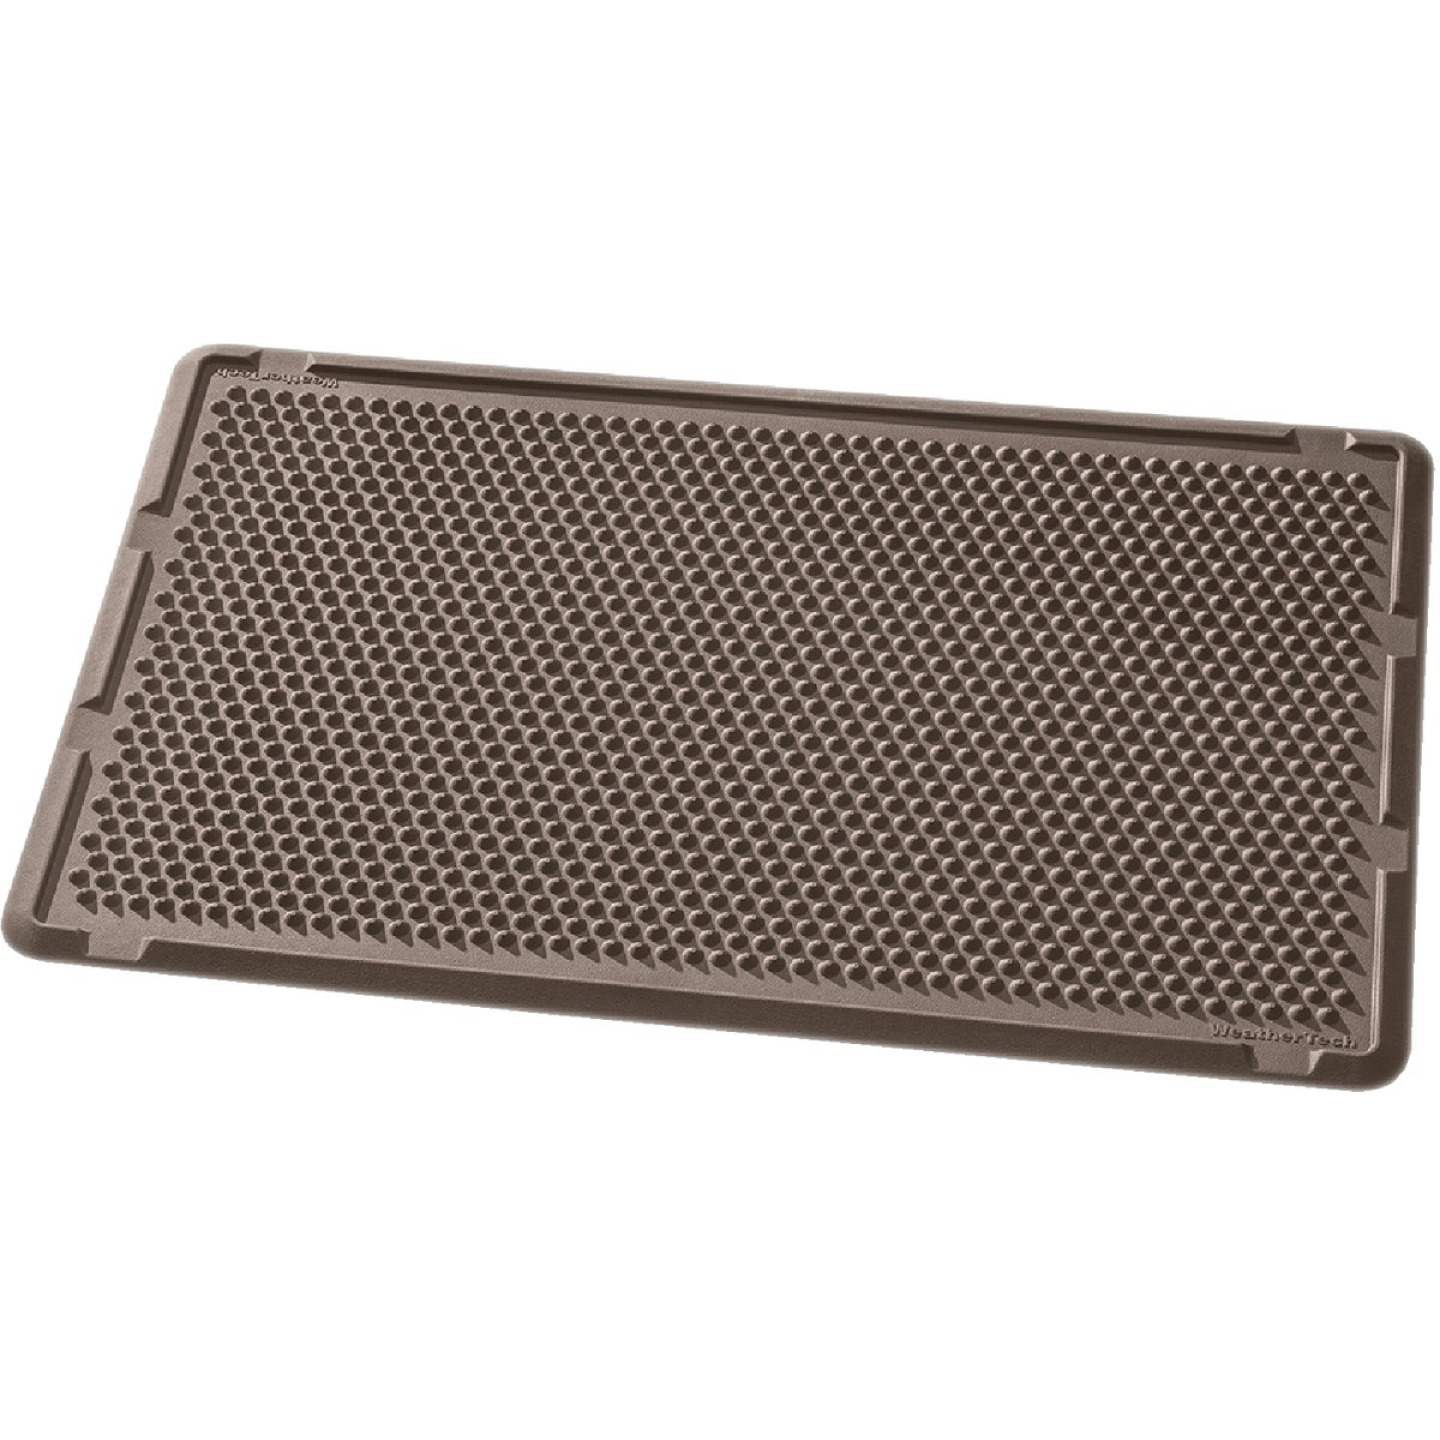 WeatherTech 24 In. x 39 In. Brown Outdoor Mat Image 1